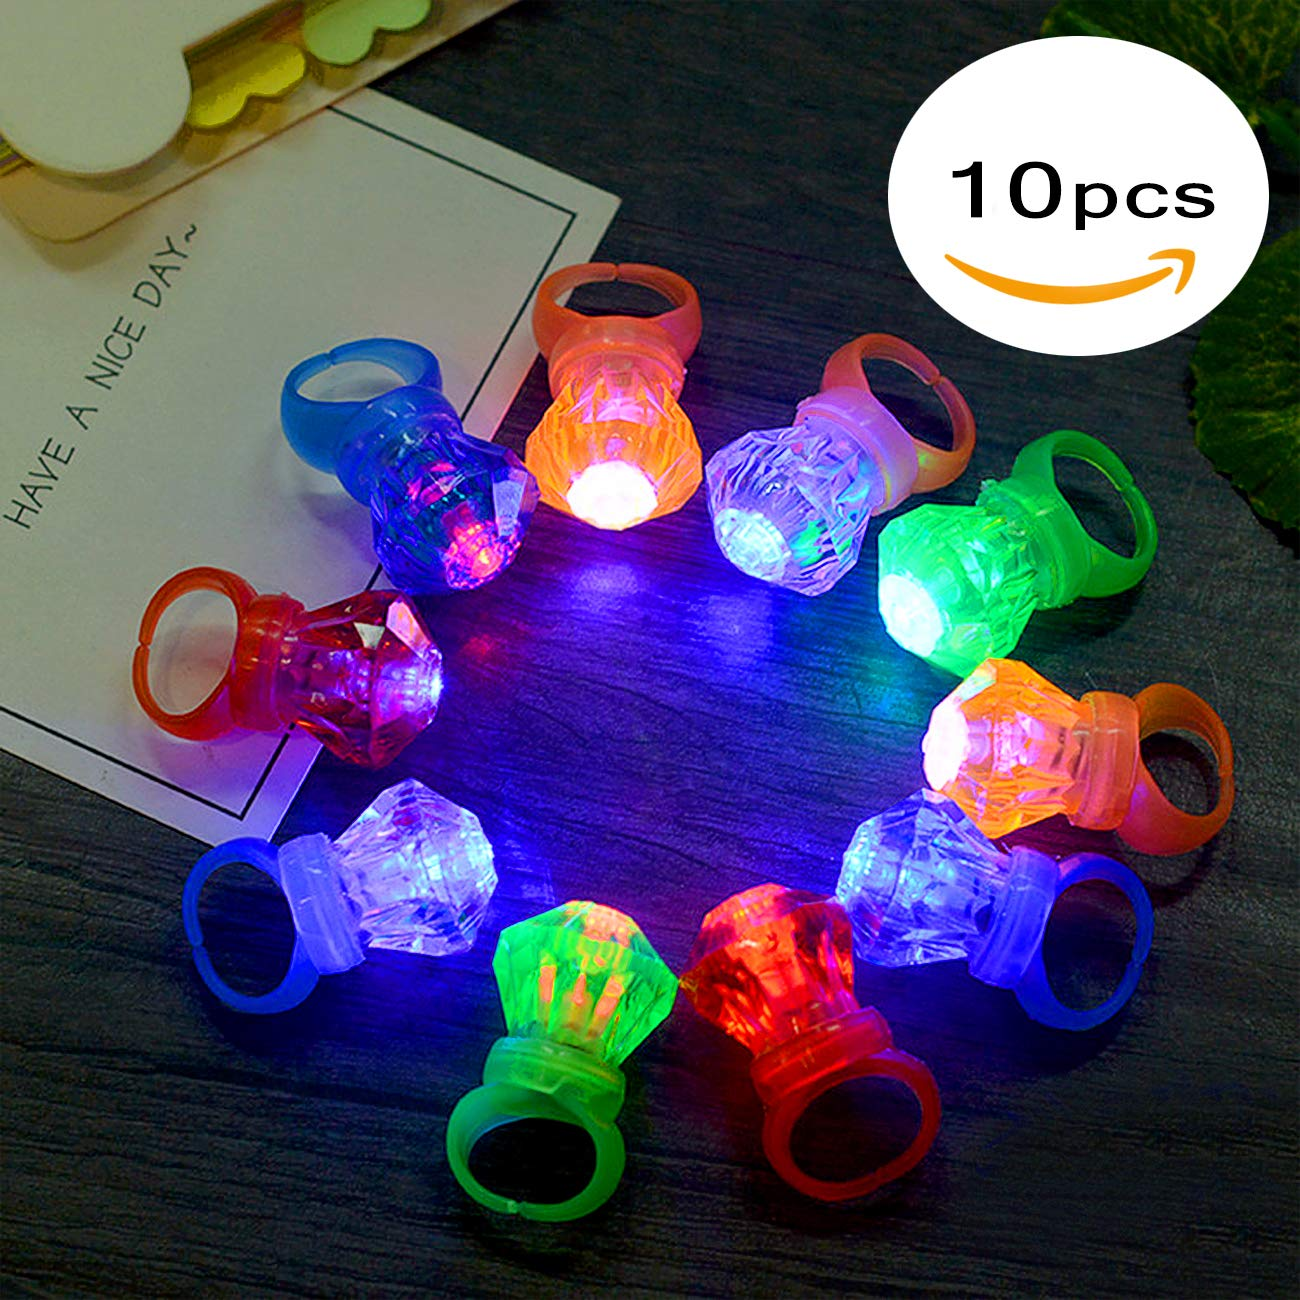 FYT 60 PCS LED Light Up Toys Glow In The Dark Party Supplies,Party Favors For Kids、Parents、Friends,With 40 LED Finger Lights+10 LED Lighted Rings+ 5 Bracelets+ 5 Flashing Slotted Shades Glasses by FYT (Image #2)